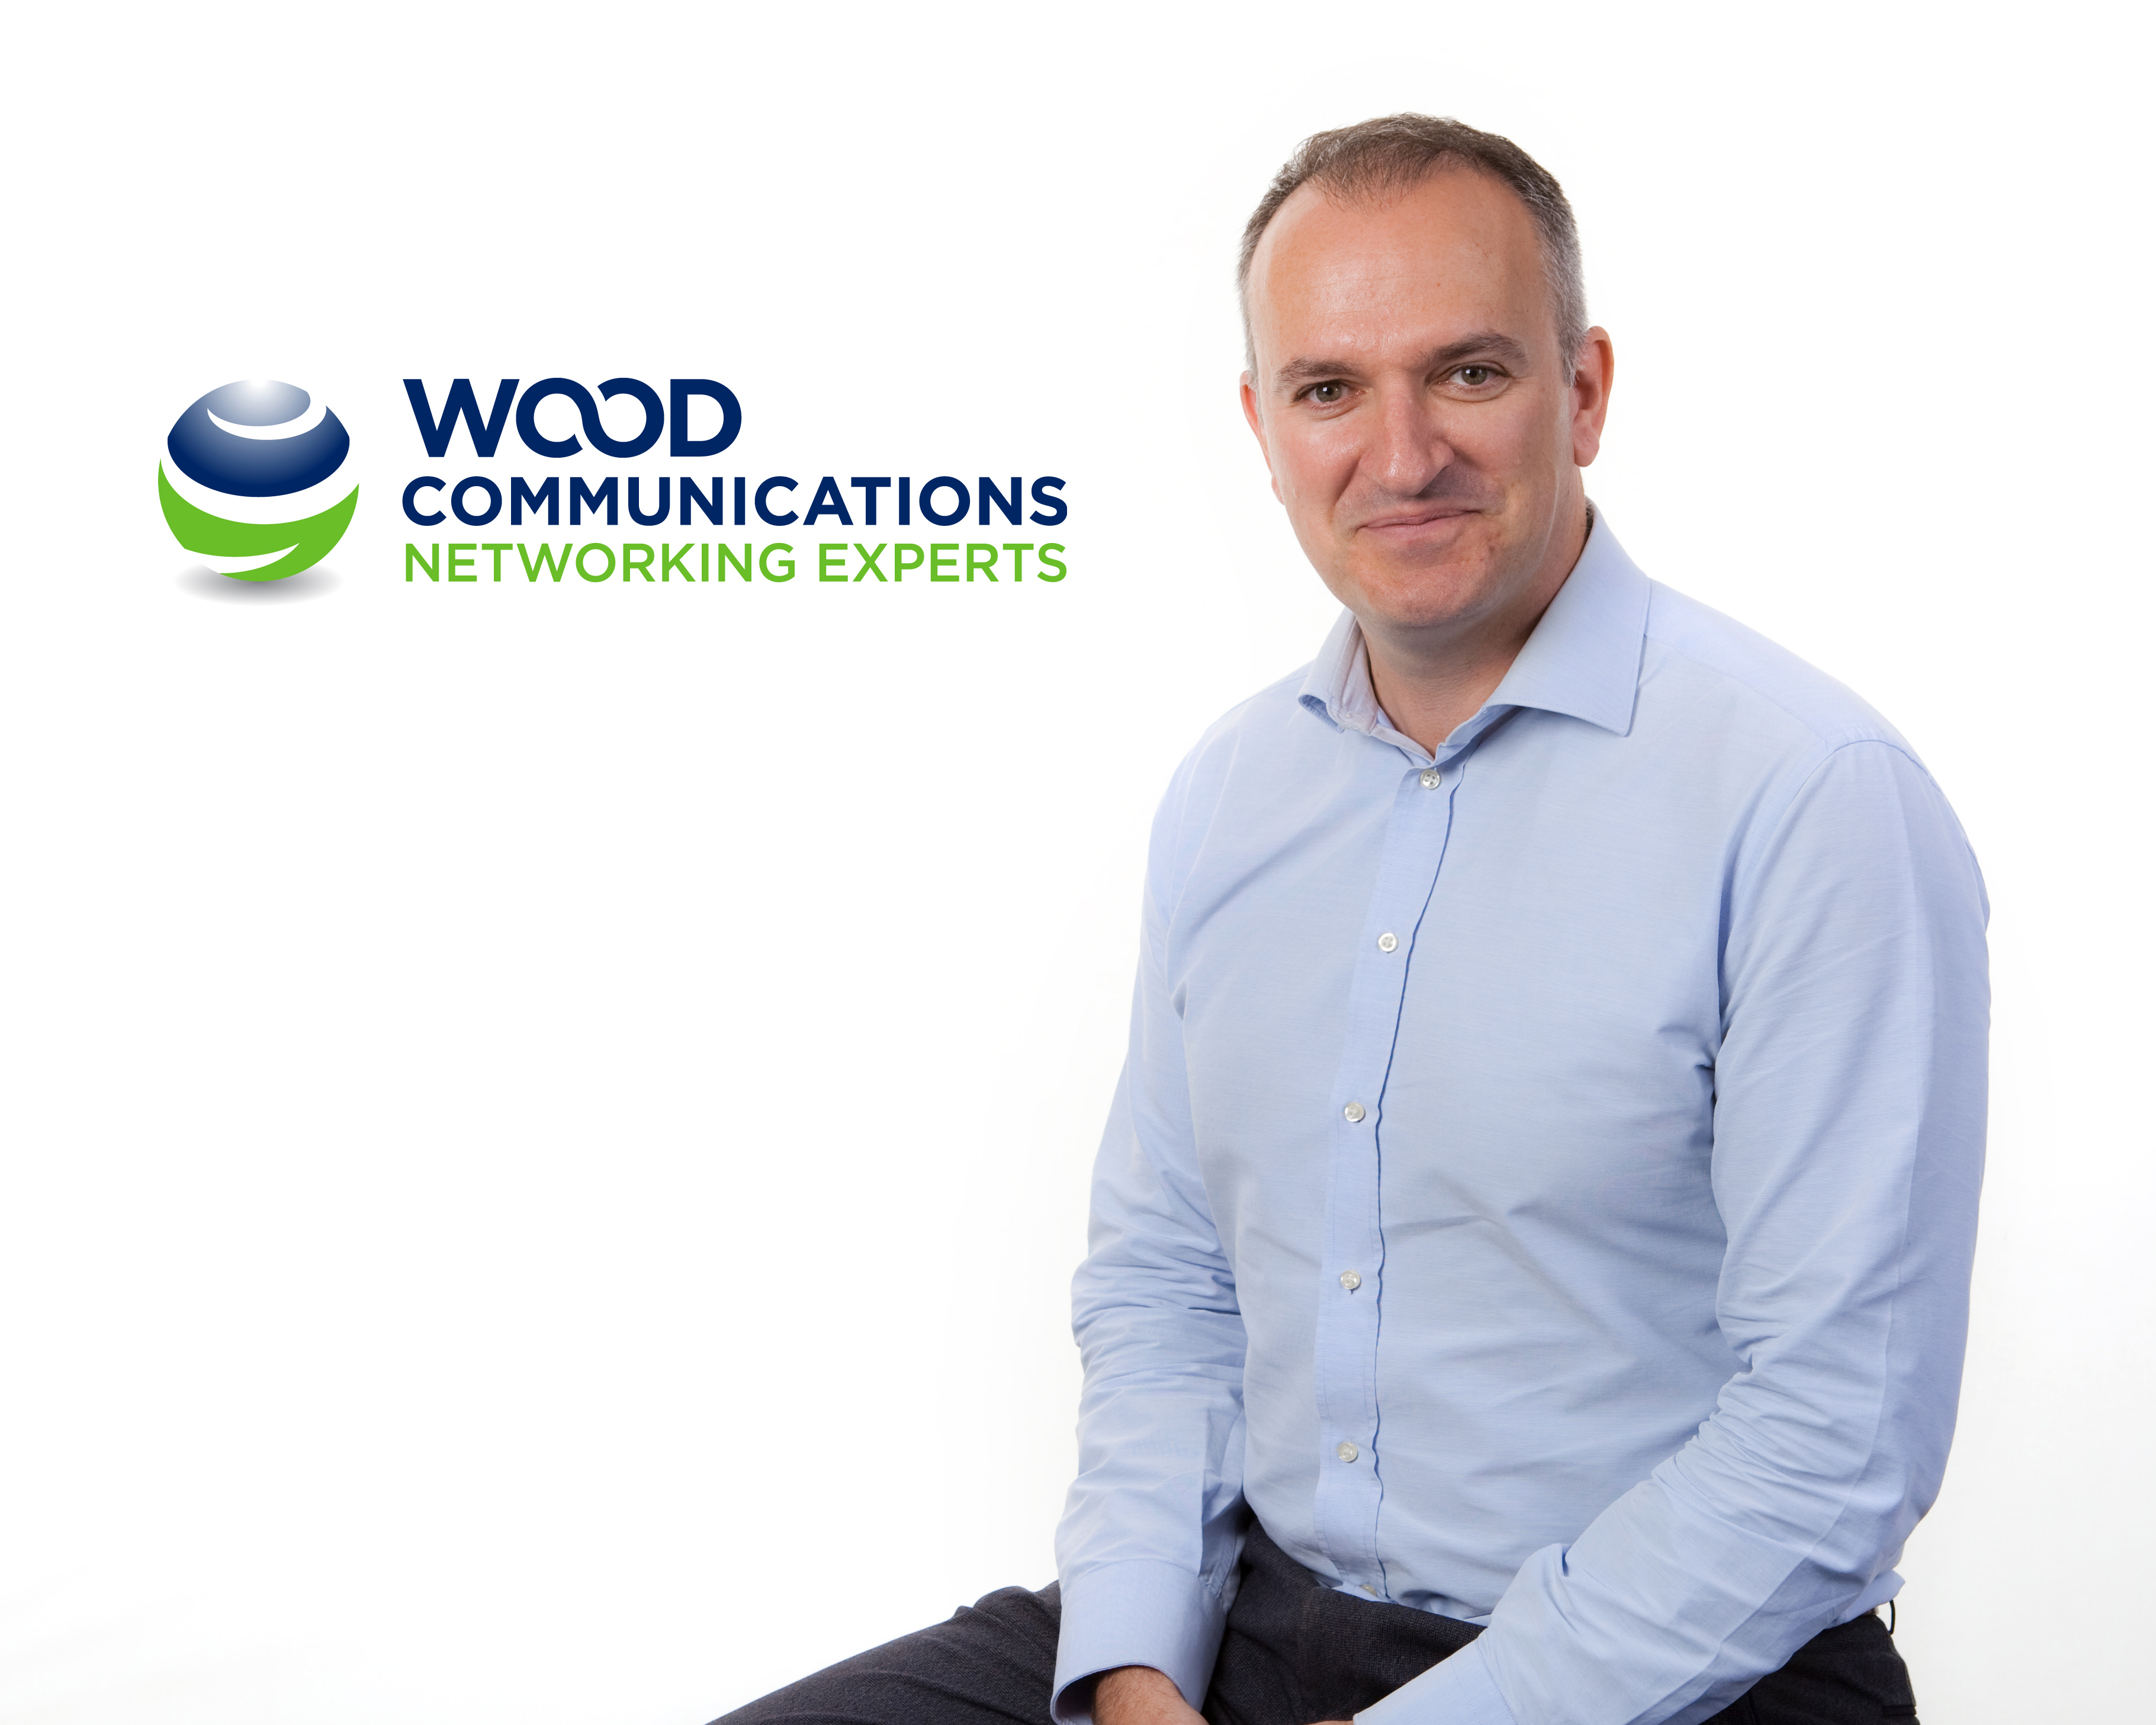 14. Keith Mahony - wood communications networking expert